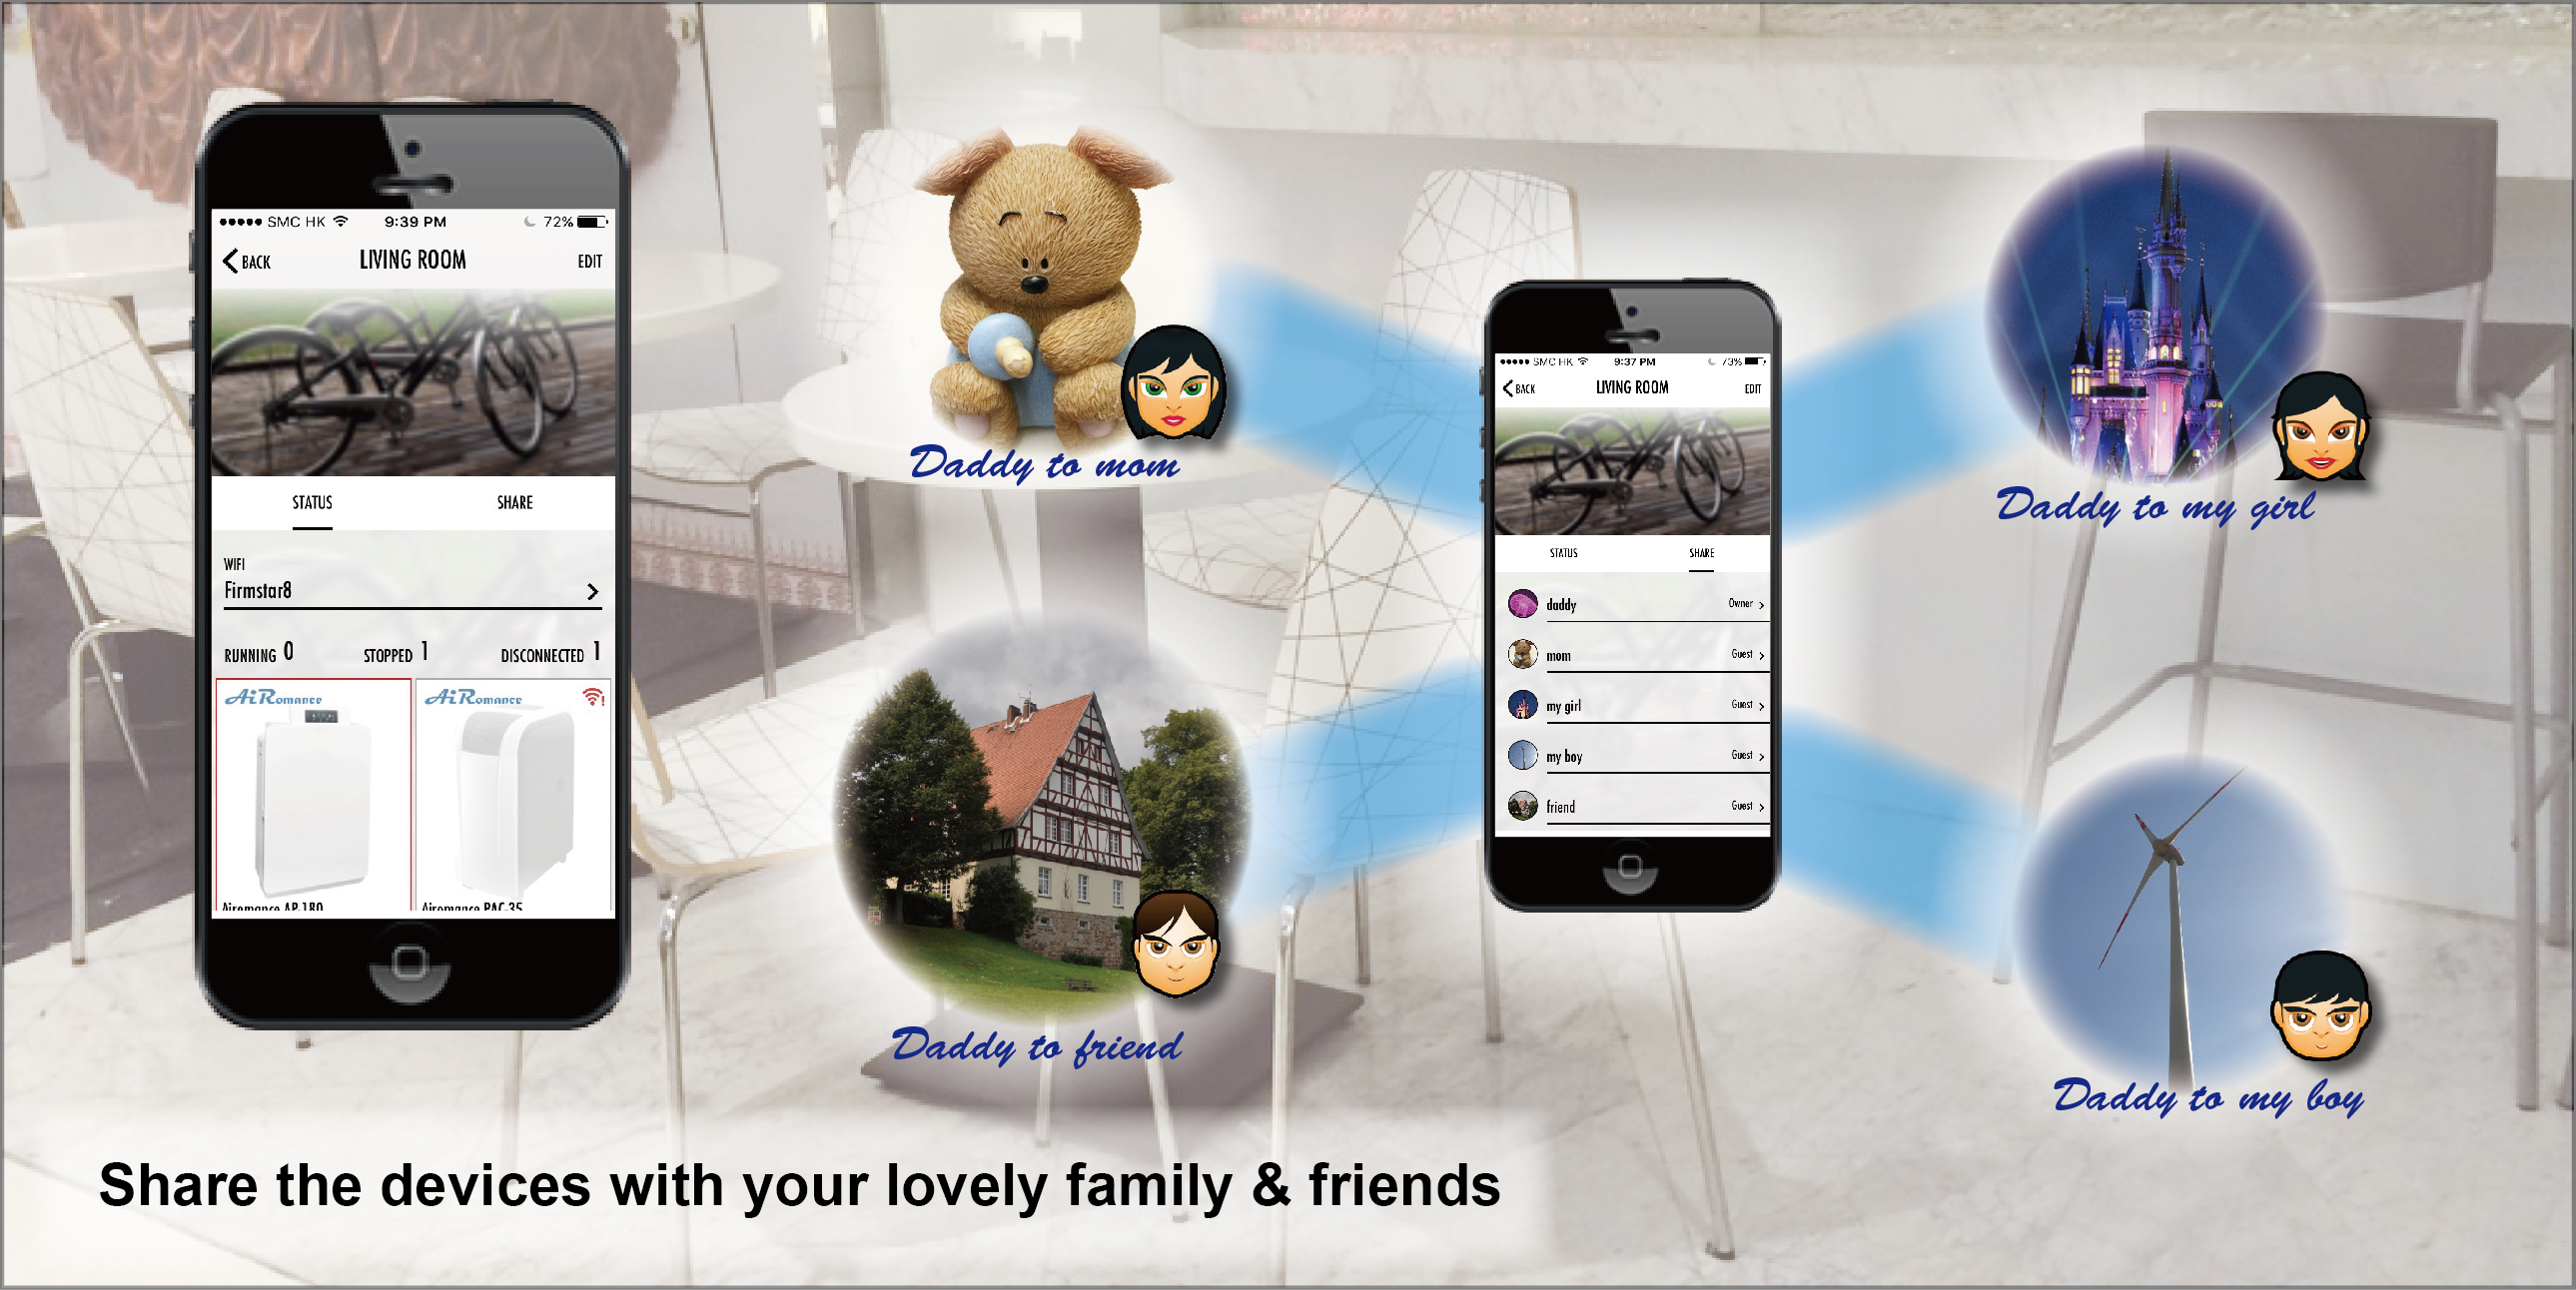 Share the devices with your lovely family & friends   20160516